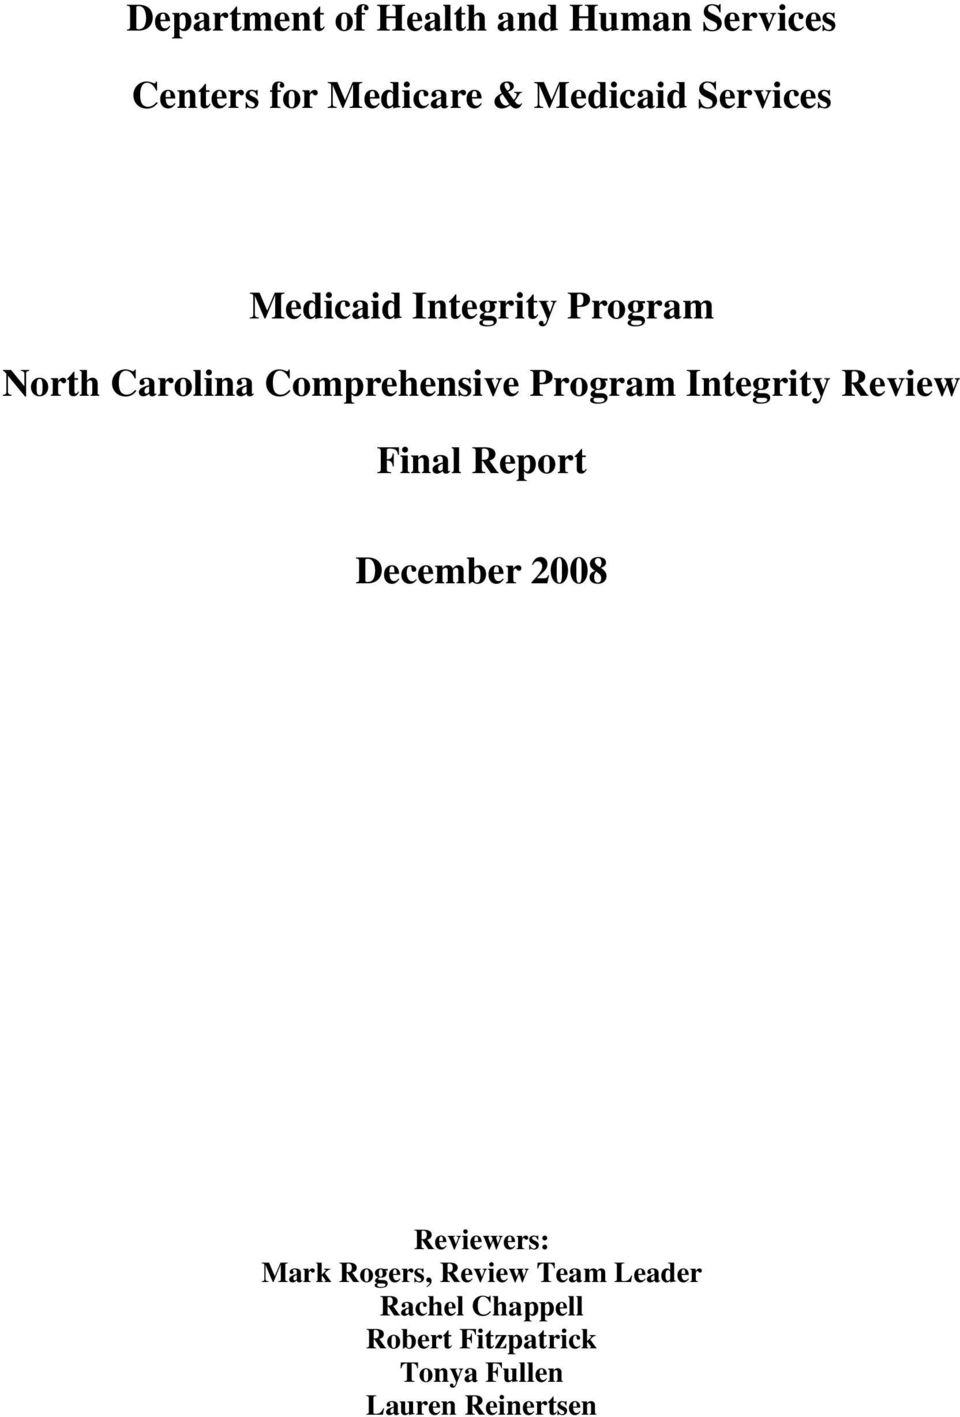 Comprehensive Program Integrity Review Final Report Reviewers: Mark